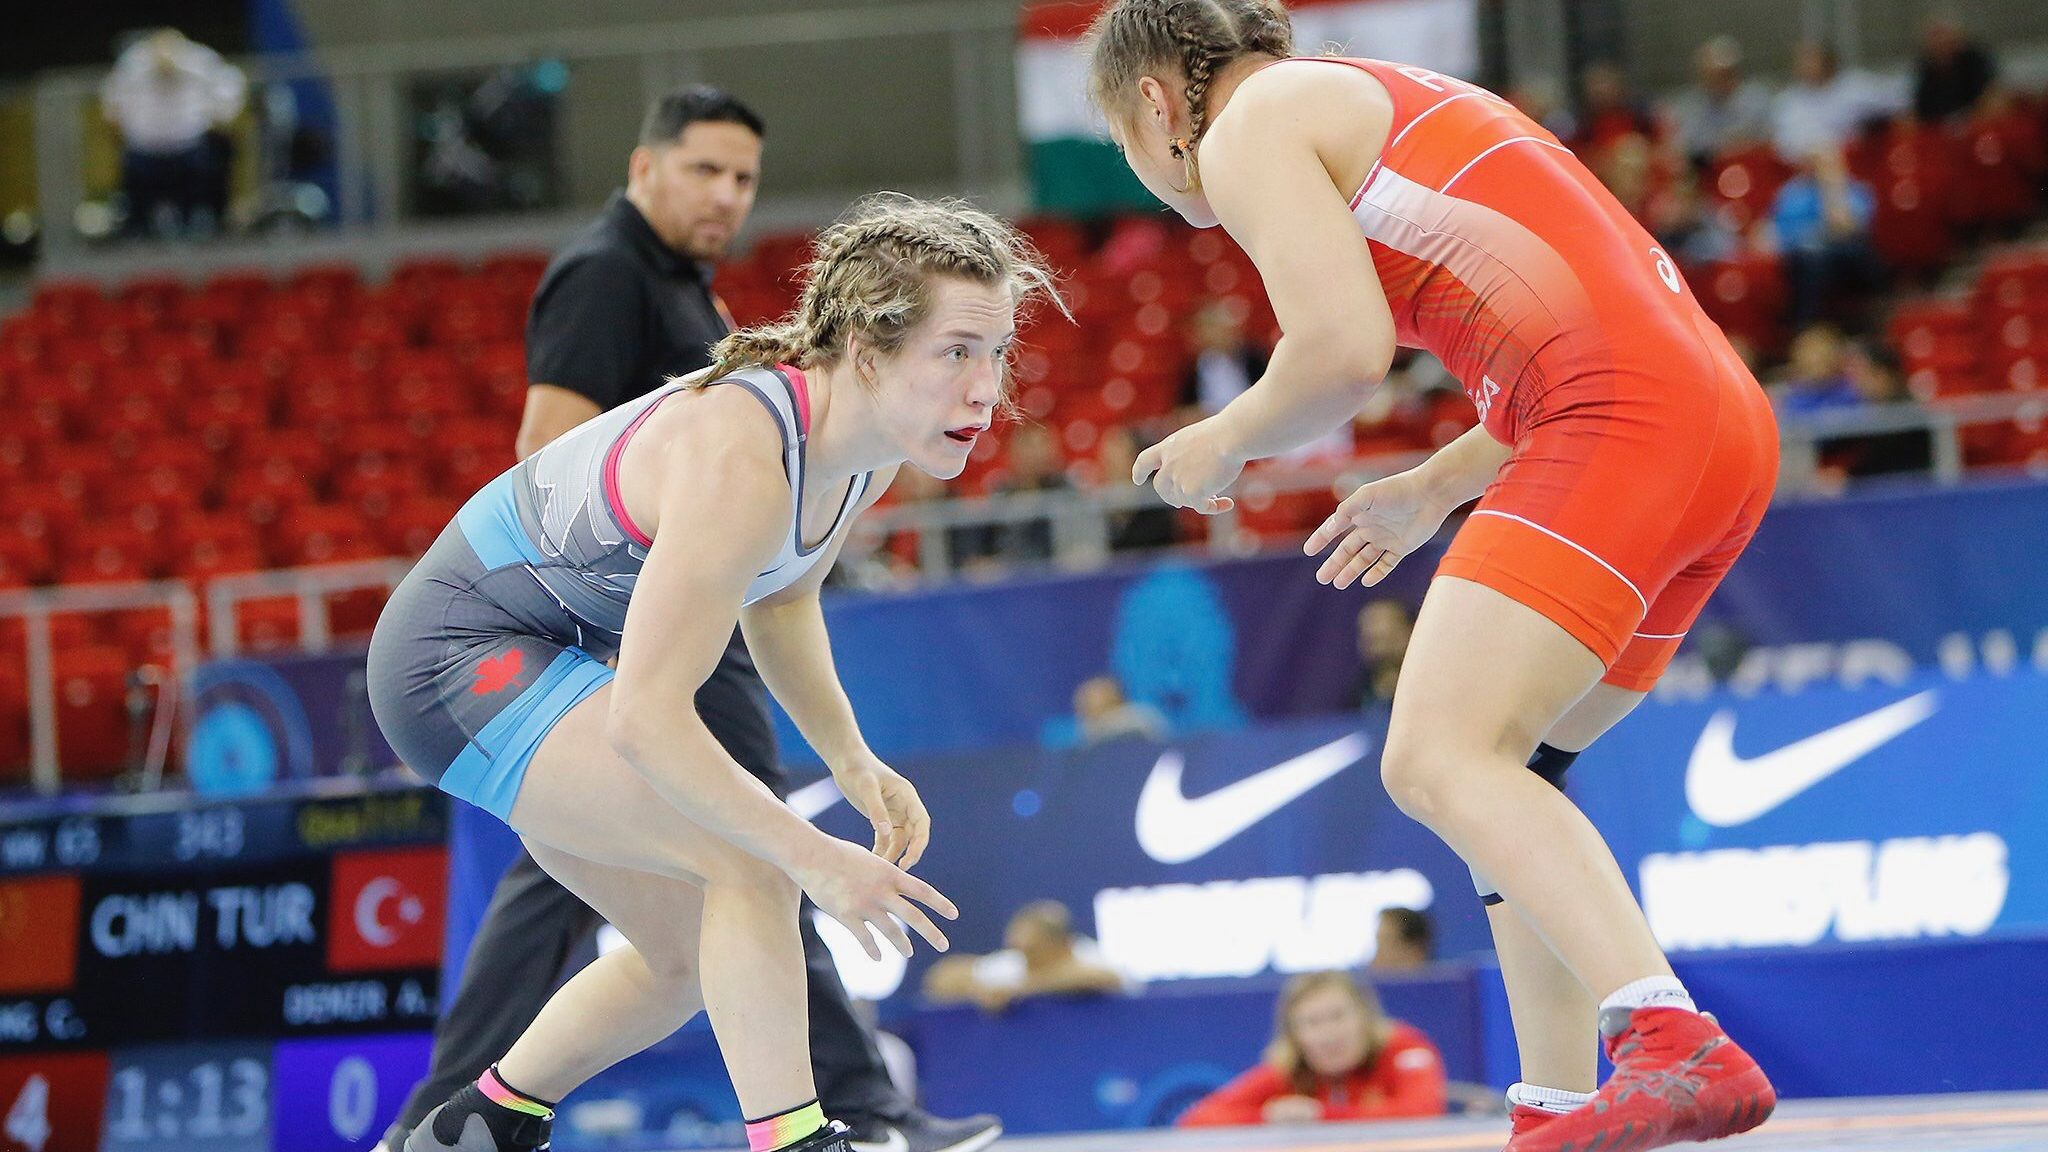 Two women wrestlers about to start a match